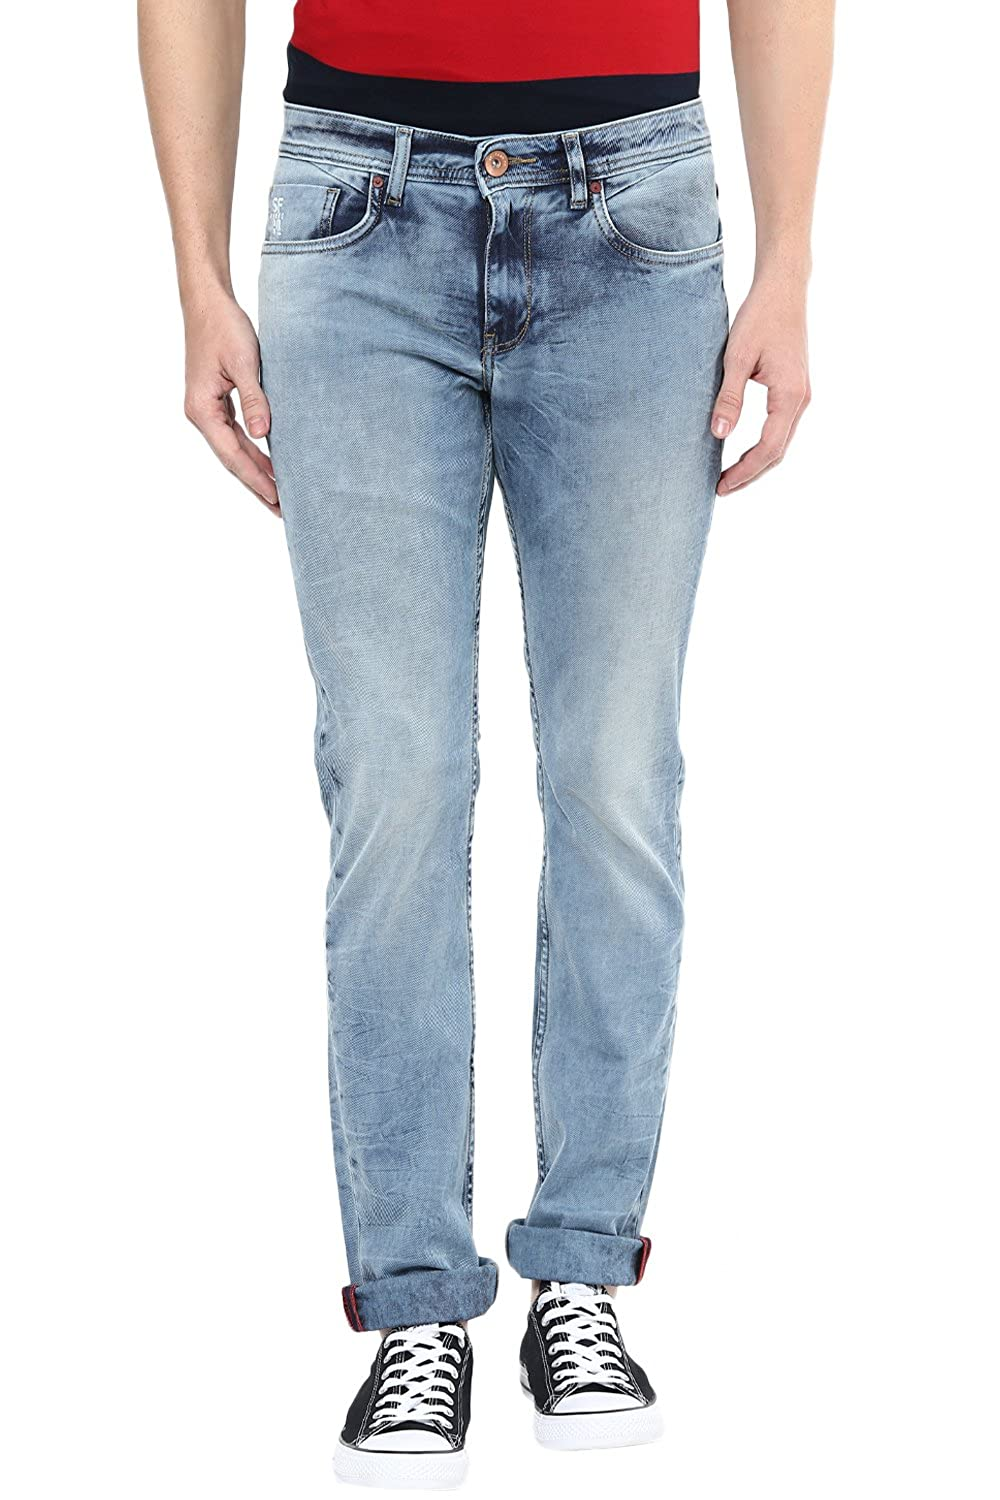 New styles!! 50% off Or Off More Off On Men's Clothing By Amazon | SF Jeans by Pantaloons Men's Cotton Lycra Jeans @ Rs.999